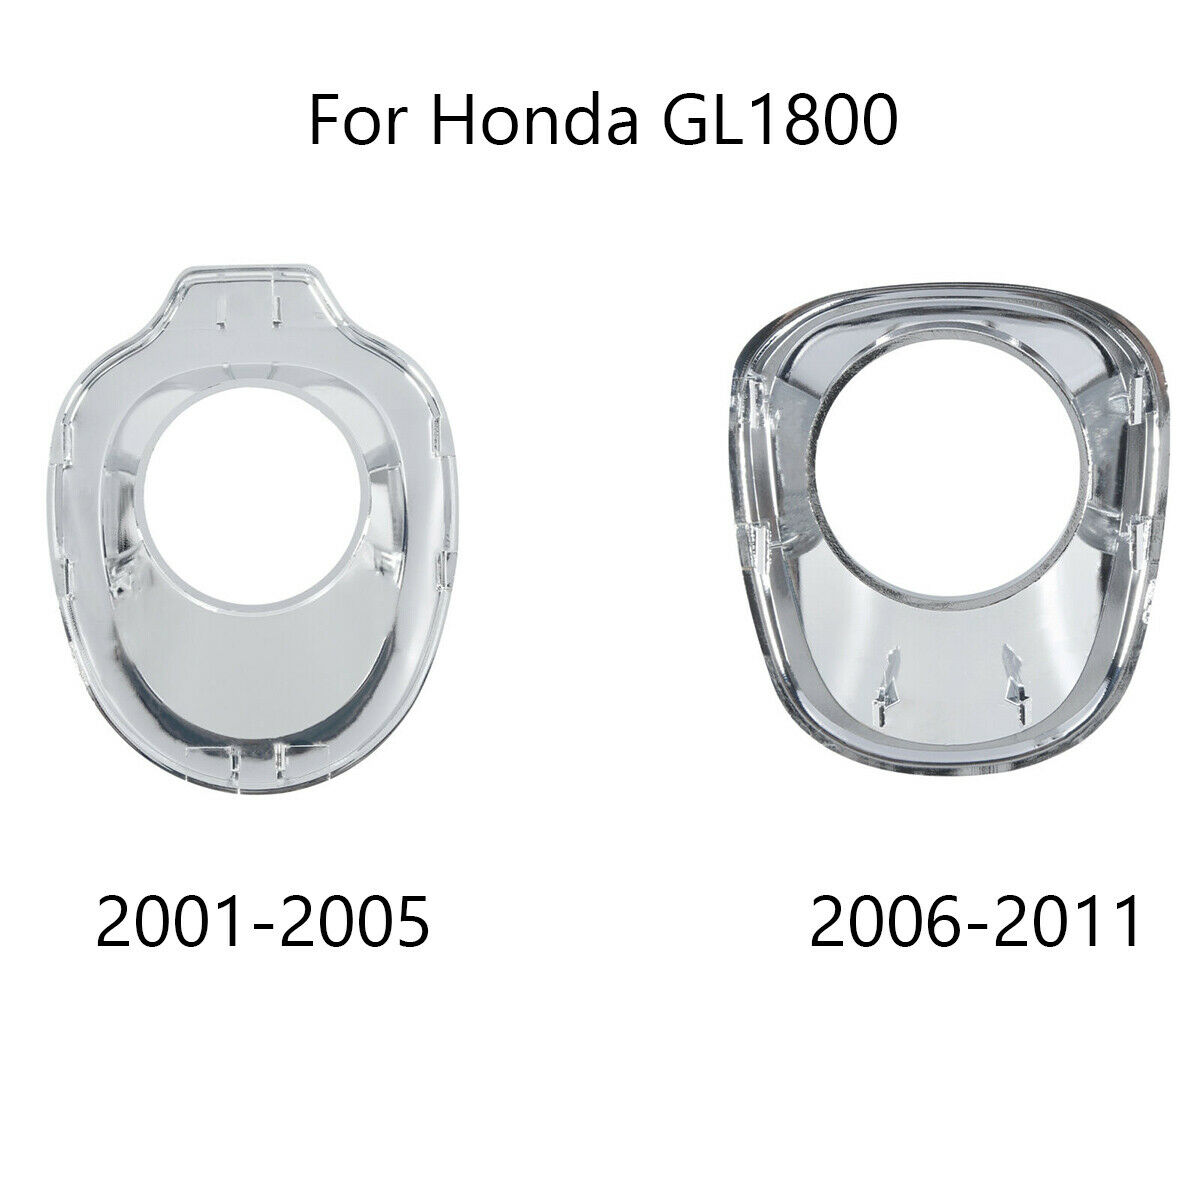 Ignition Key Accent Fairing Cover For Honda Goldwing GL1800 2001-2005 Chrome